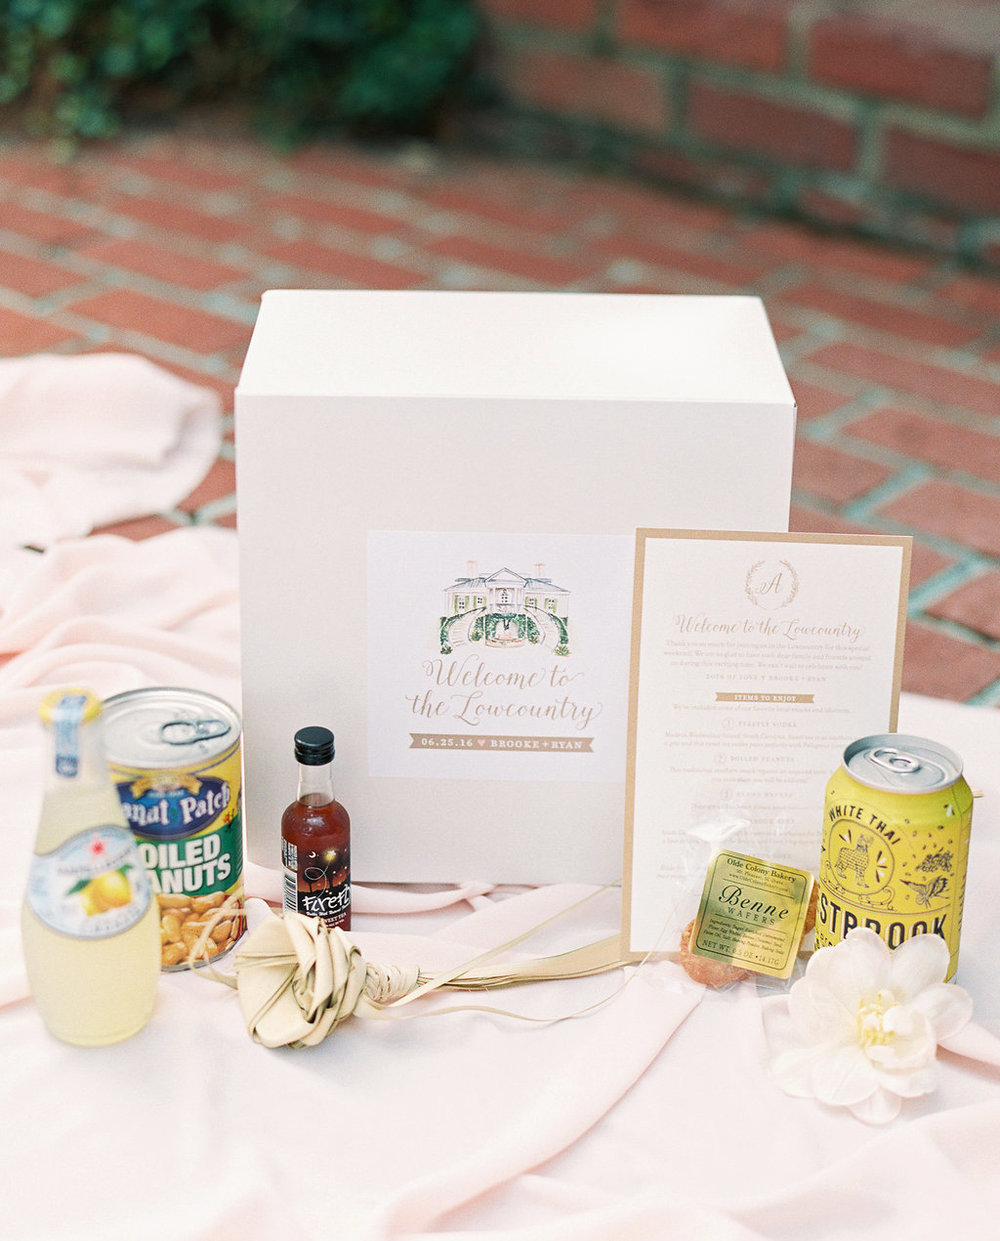 Custom Hilton Head wedding bag with stationery from Studio R for wedding at Oldfield Club